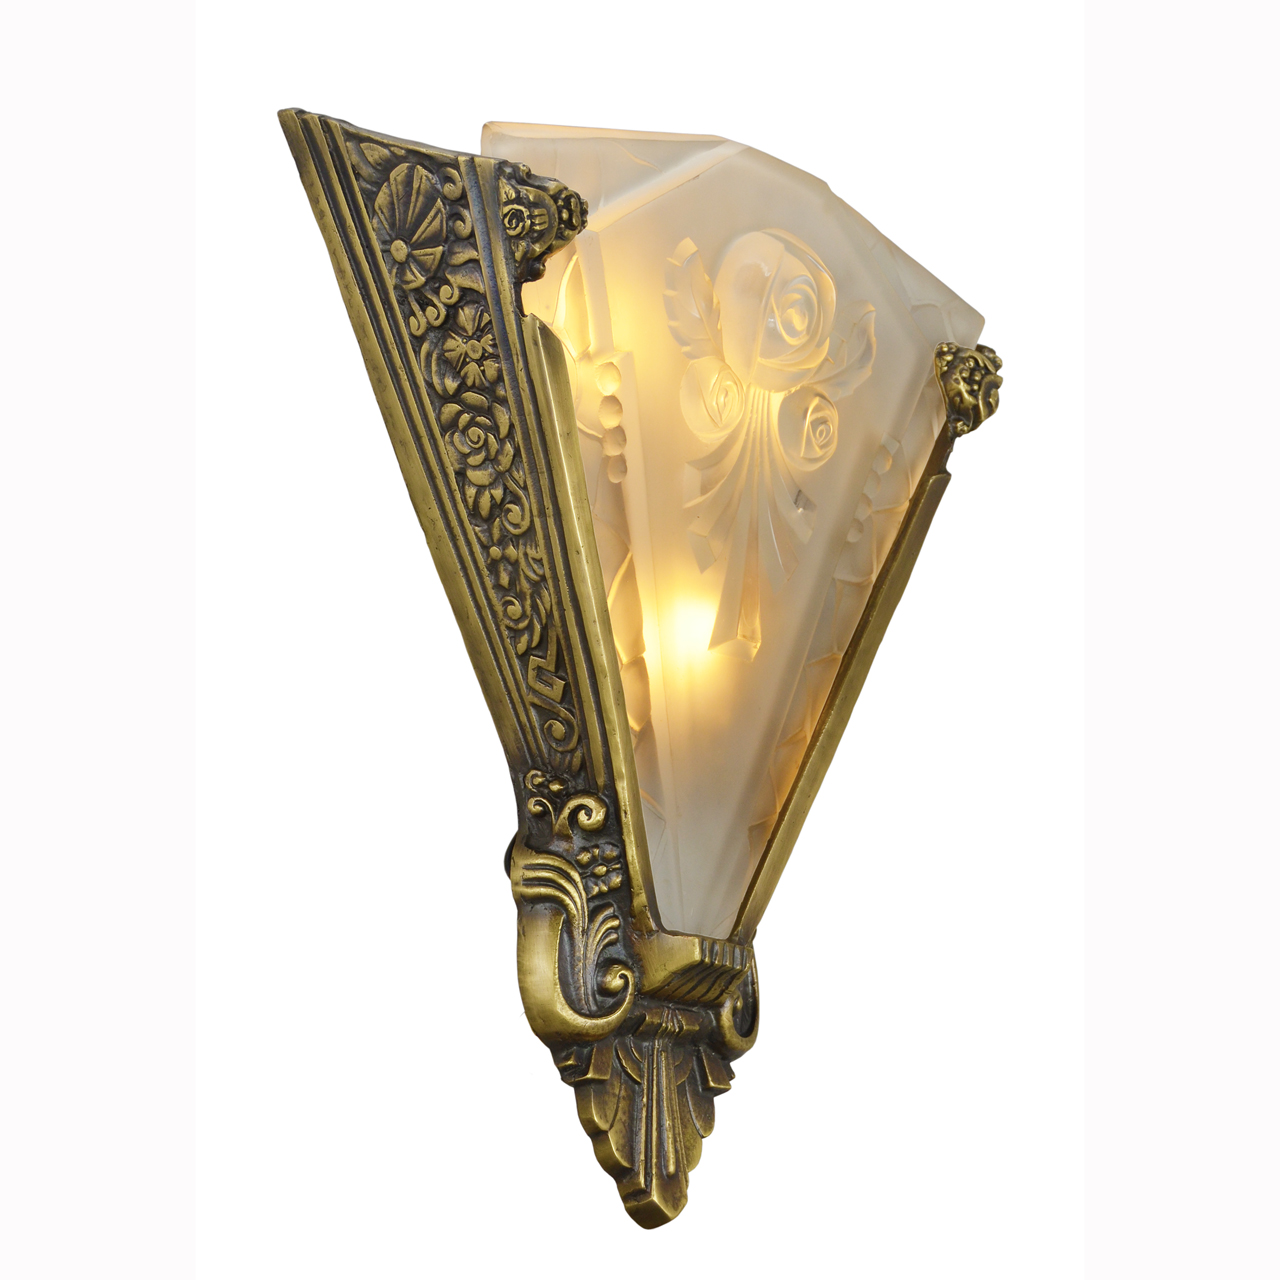 Pair Of Large Wall Sconces Lighting With Antique French